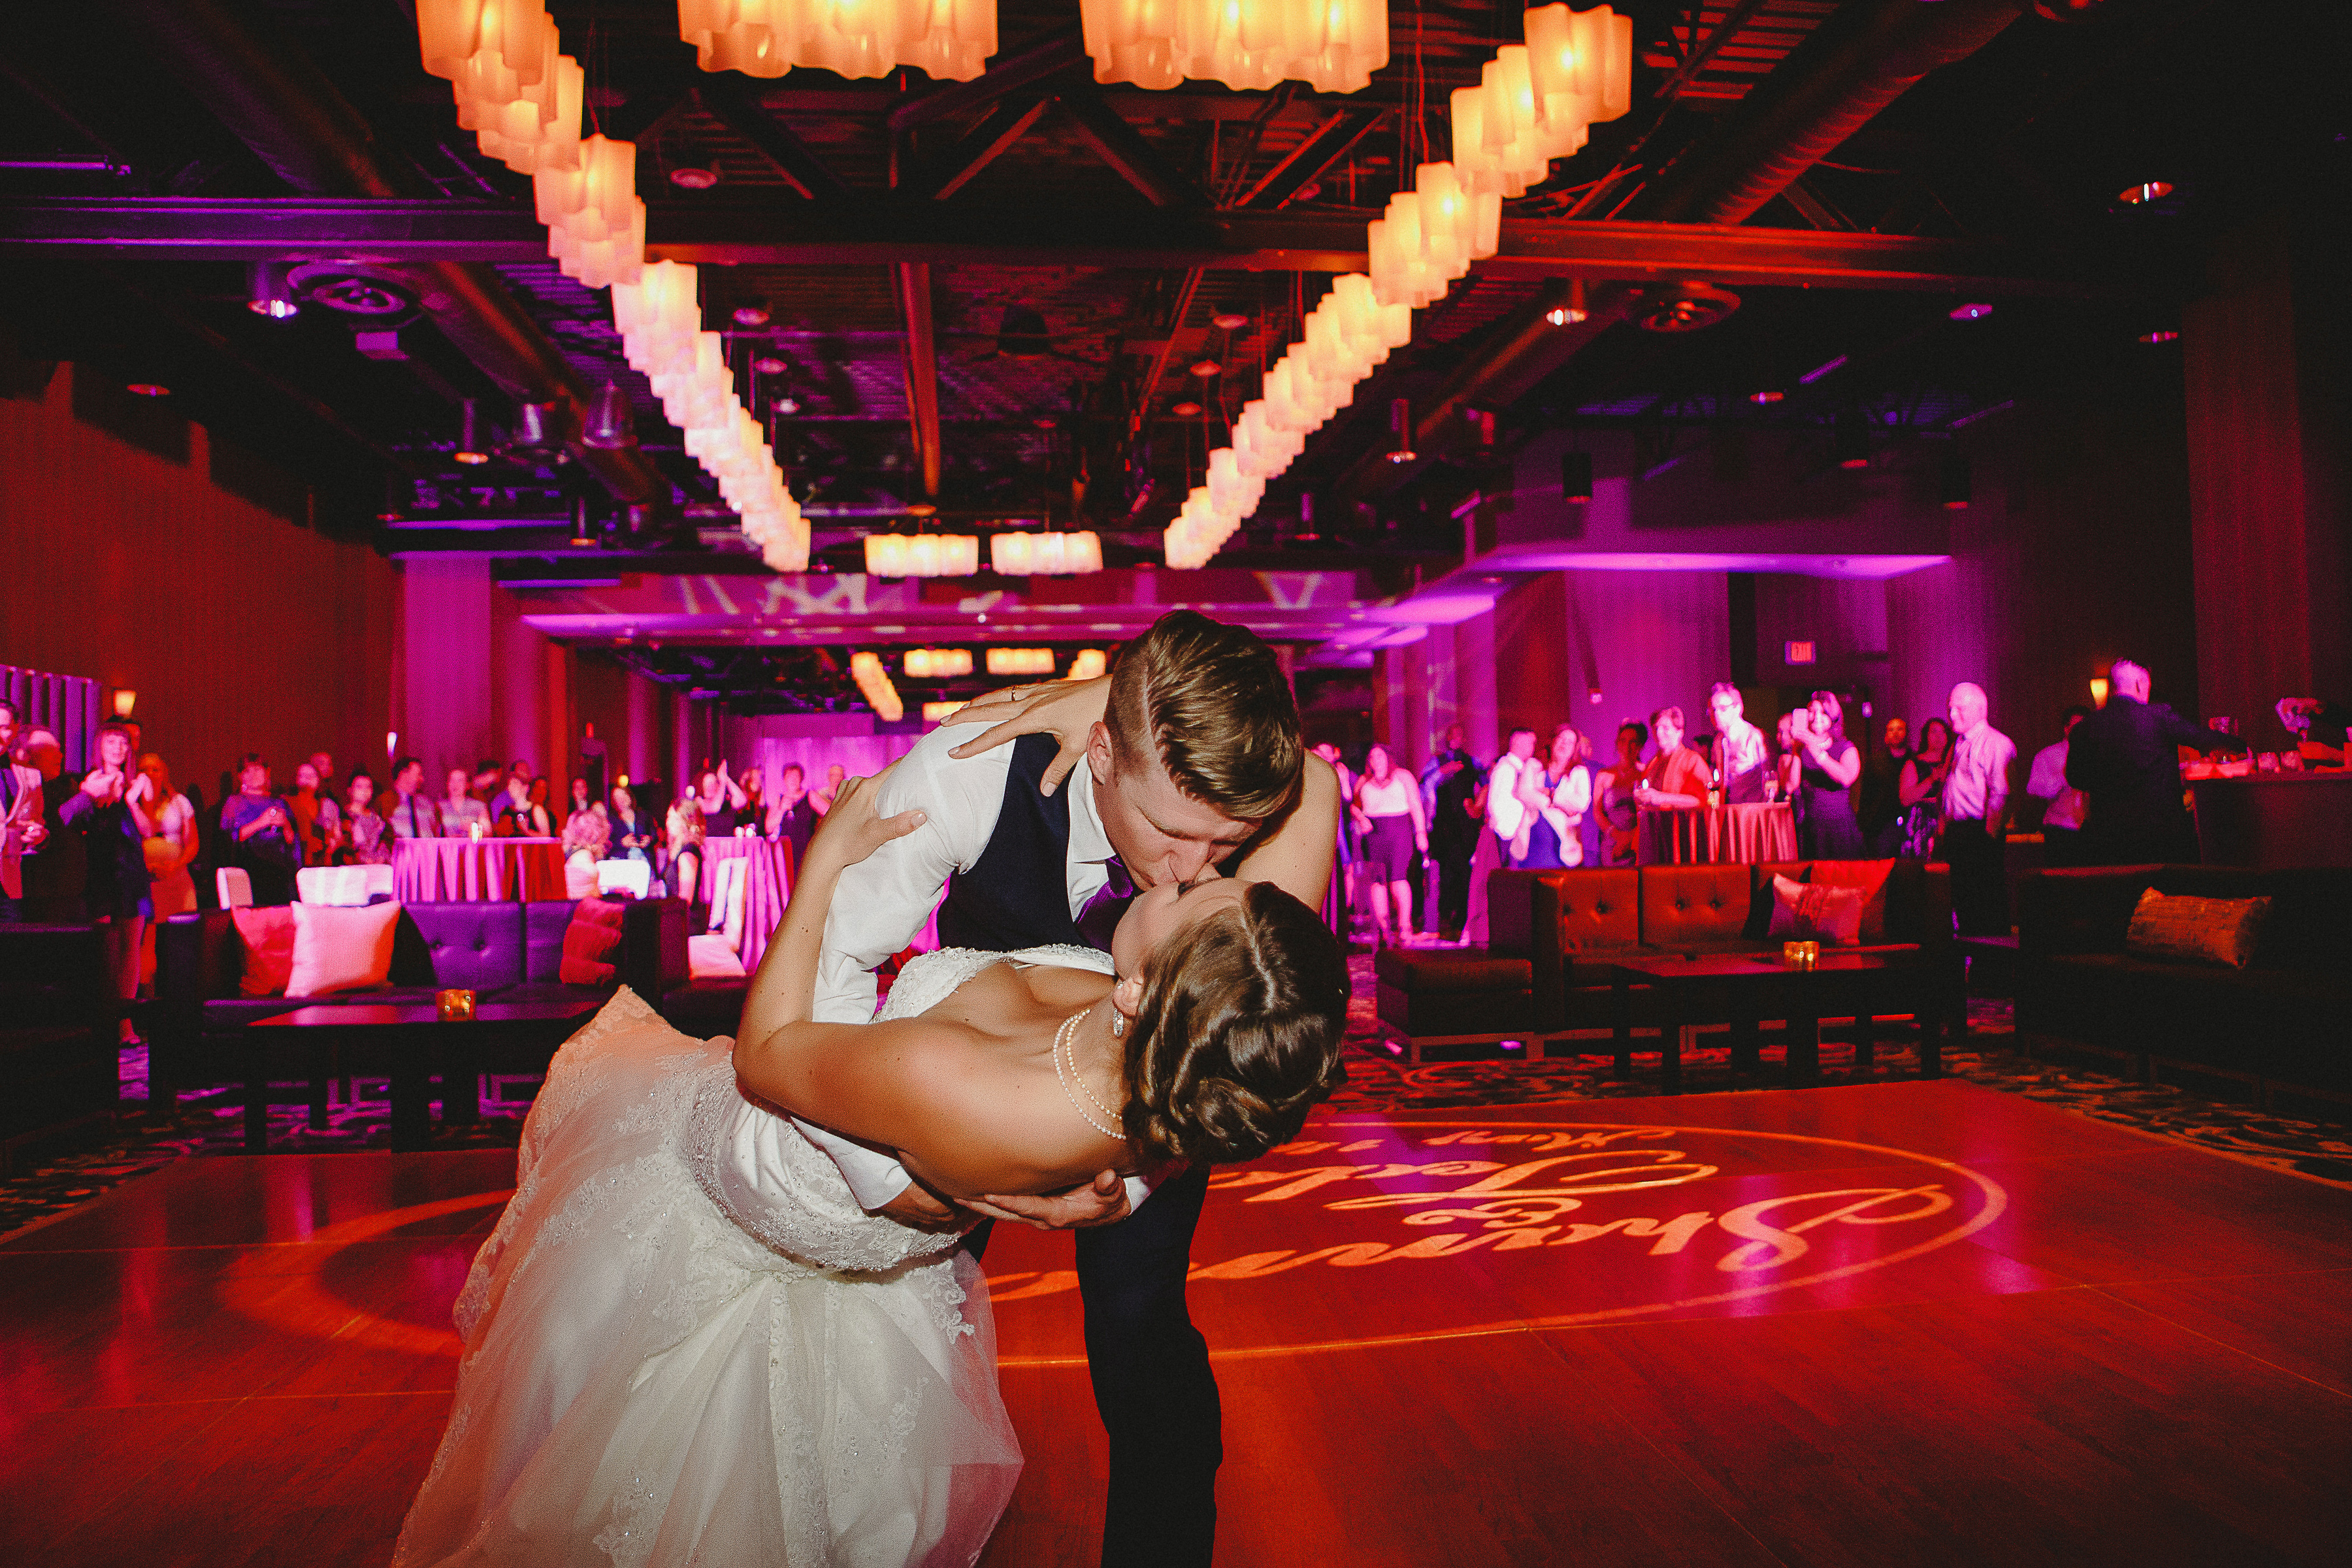 Your First Dance As Bride And Groom Is So Important It Sets The Tone For Marriage All Eyes Are On Twirl Around Floor